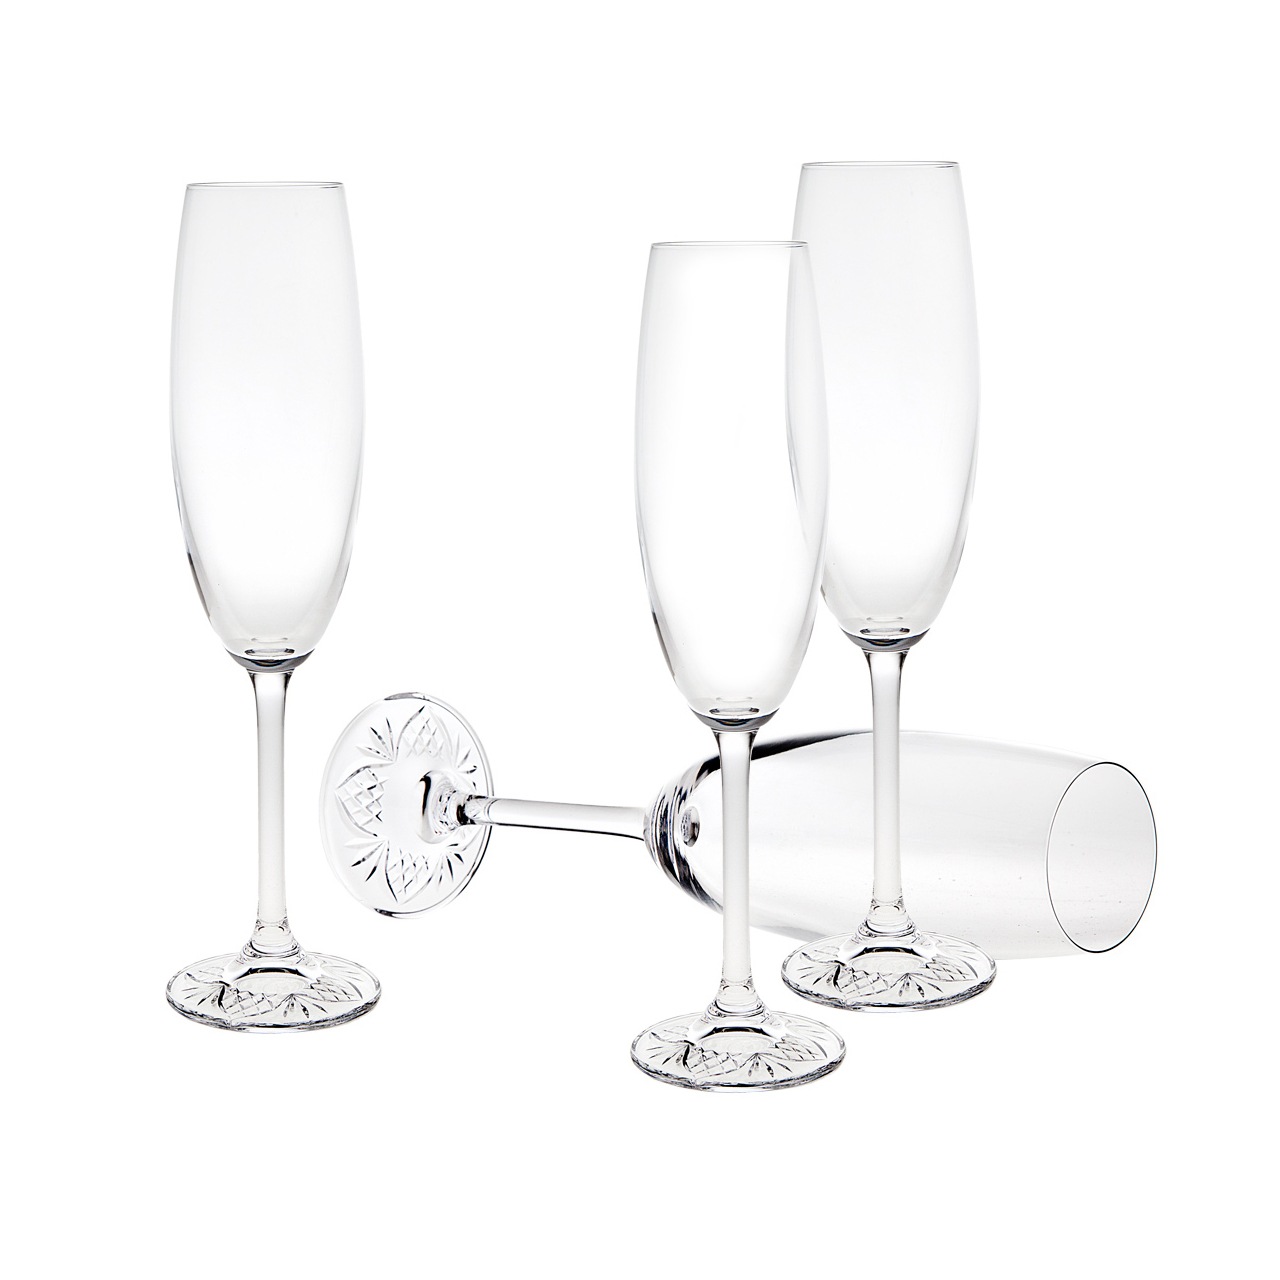 1280x1280 A Taste Of Dublin Set Of 4 Champagne Flutes Bowring